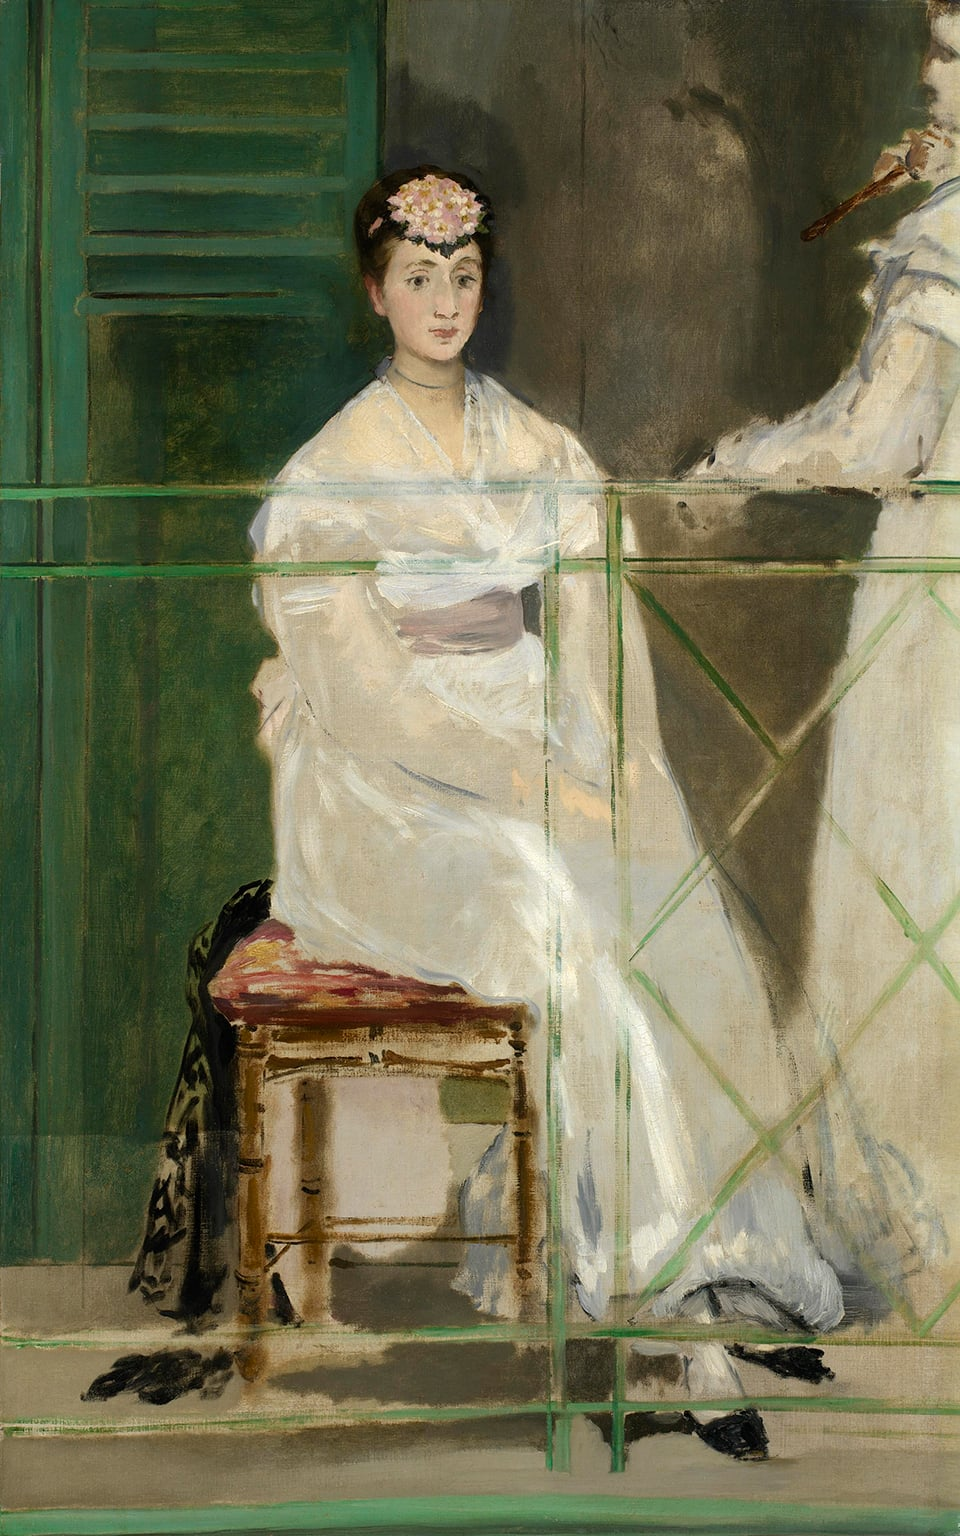 Edouard Manet, Portrait of Mademoiselle Claus, 1868 - Acquired with assistance from the Wolfson Foundation in 2012